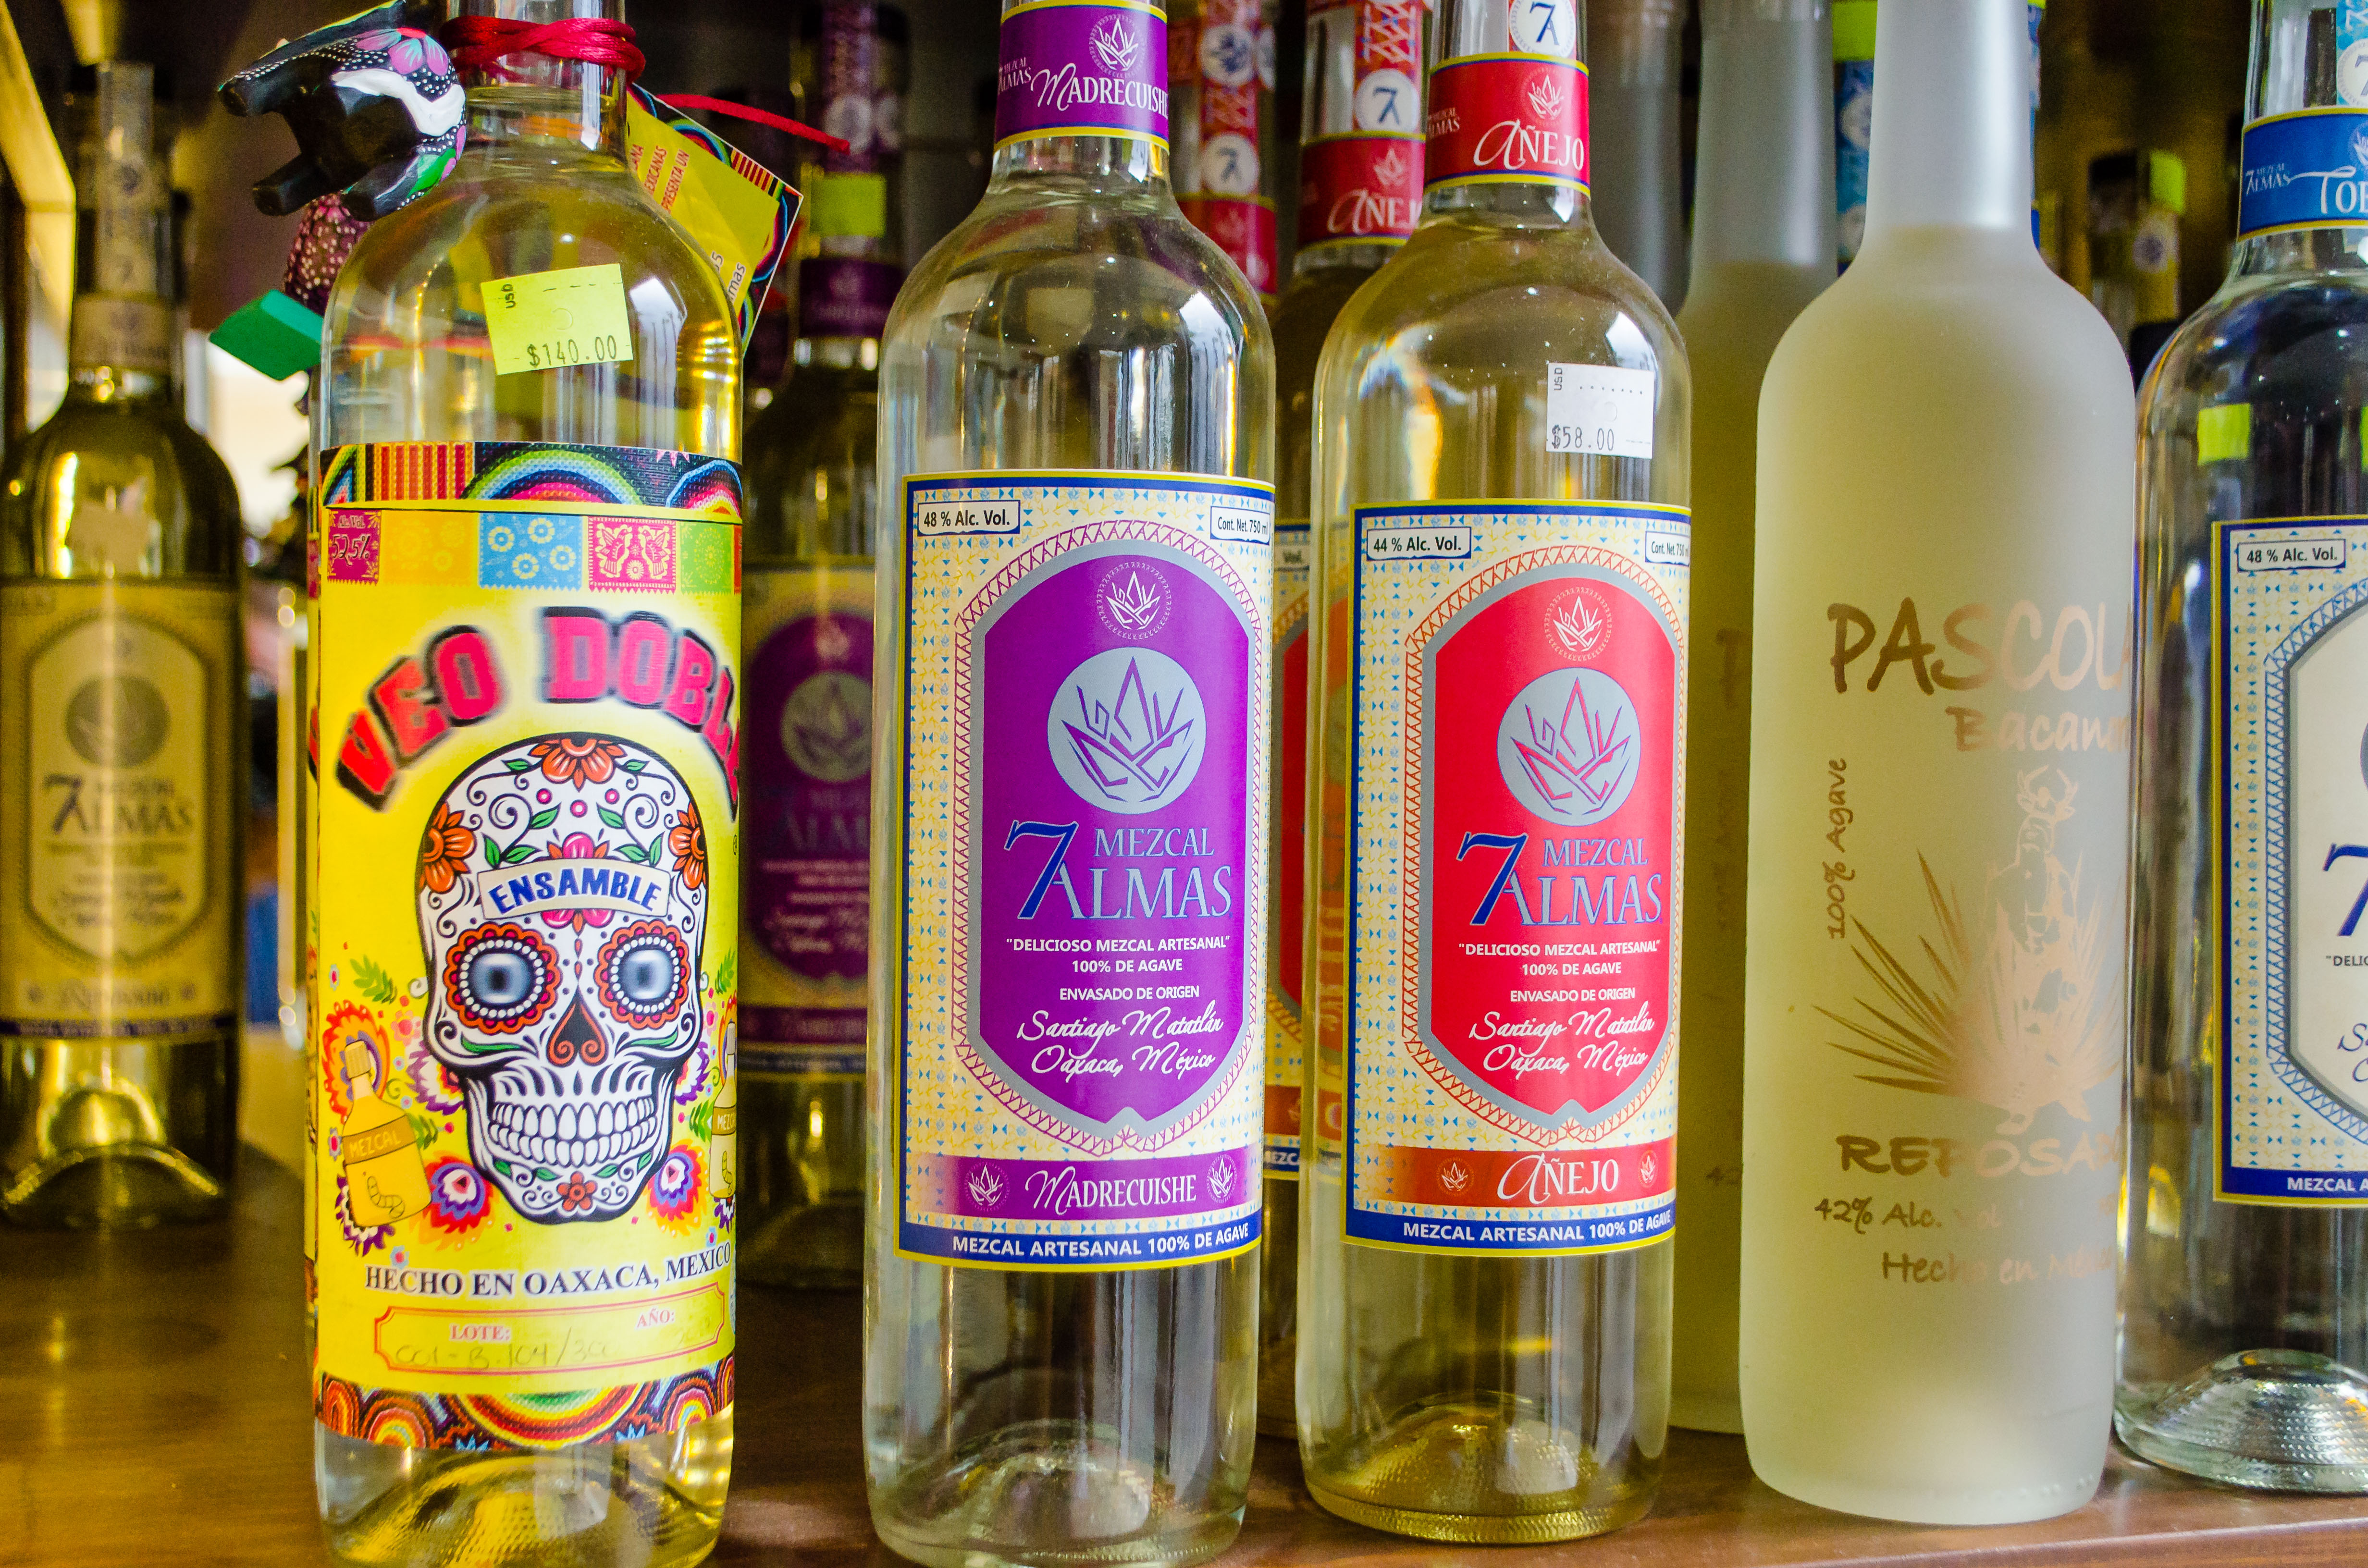 Private tequila tasting samples